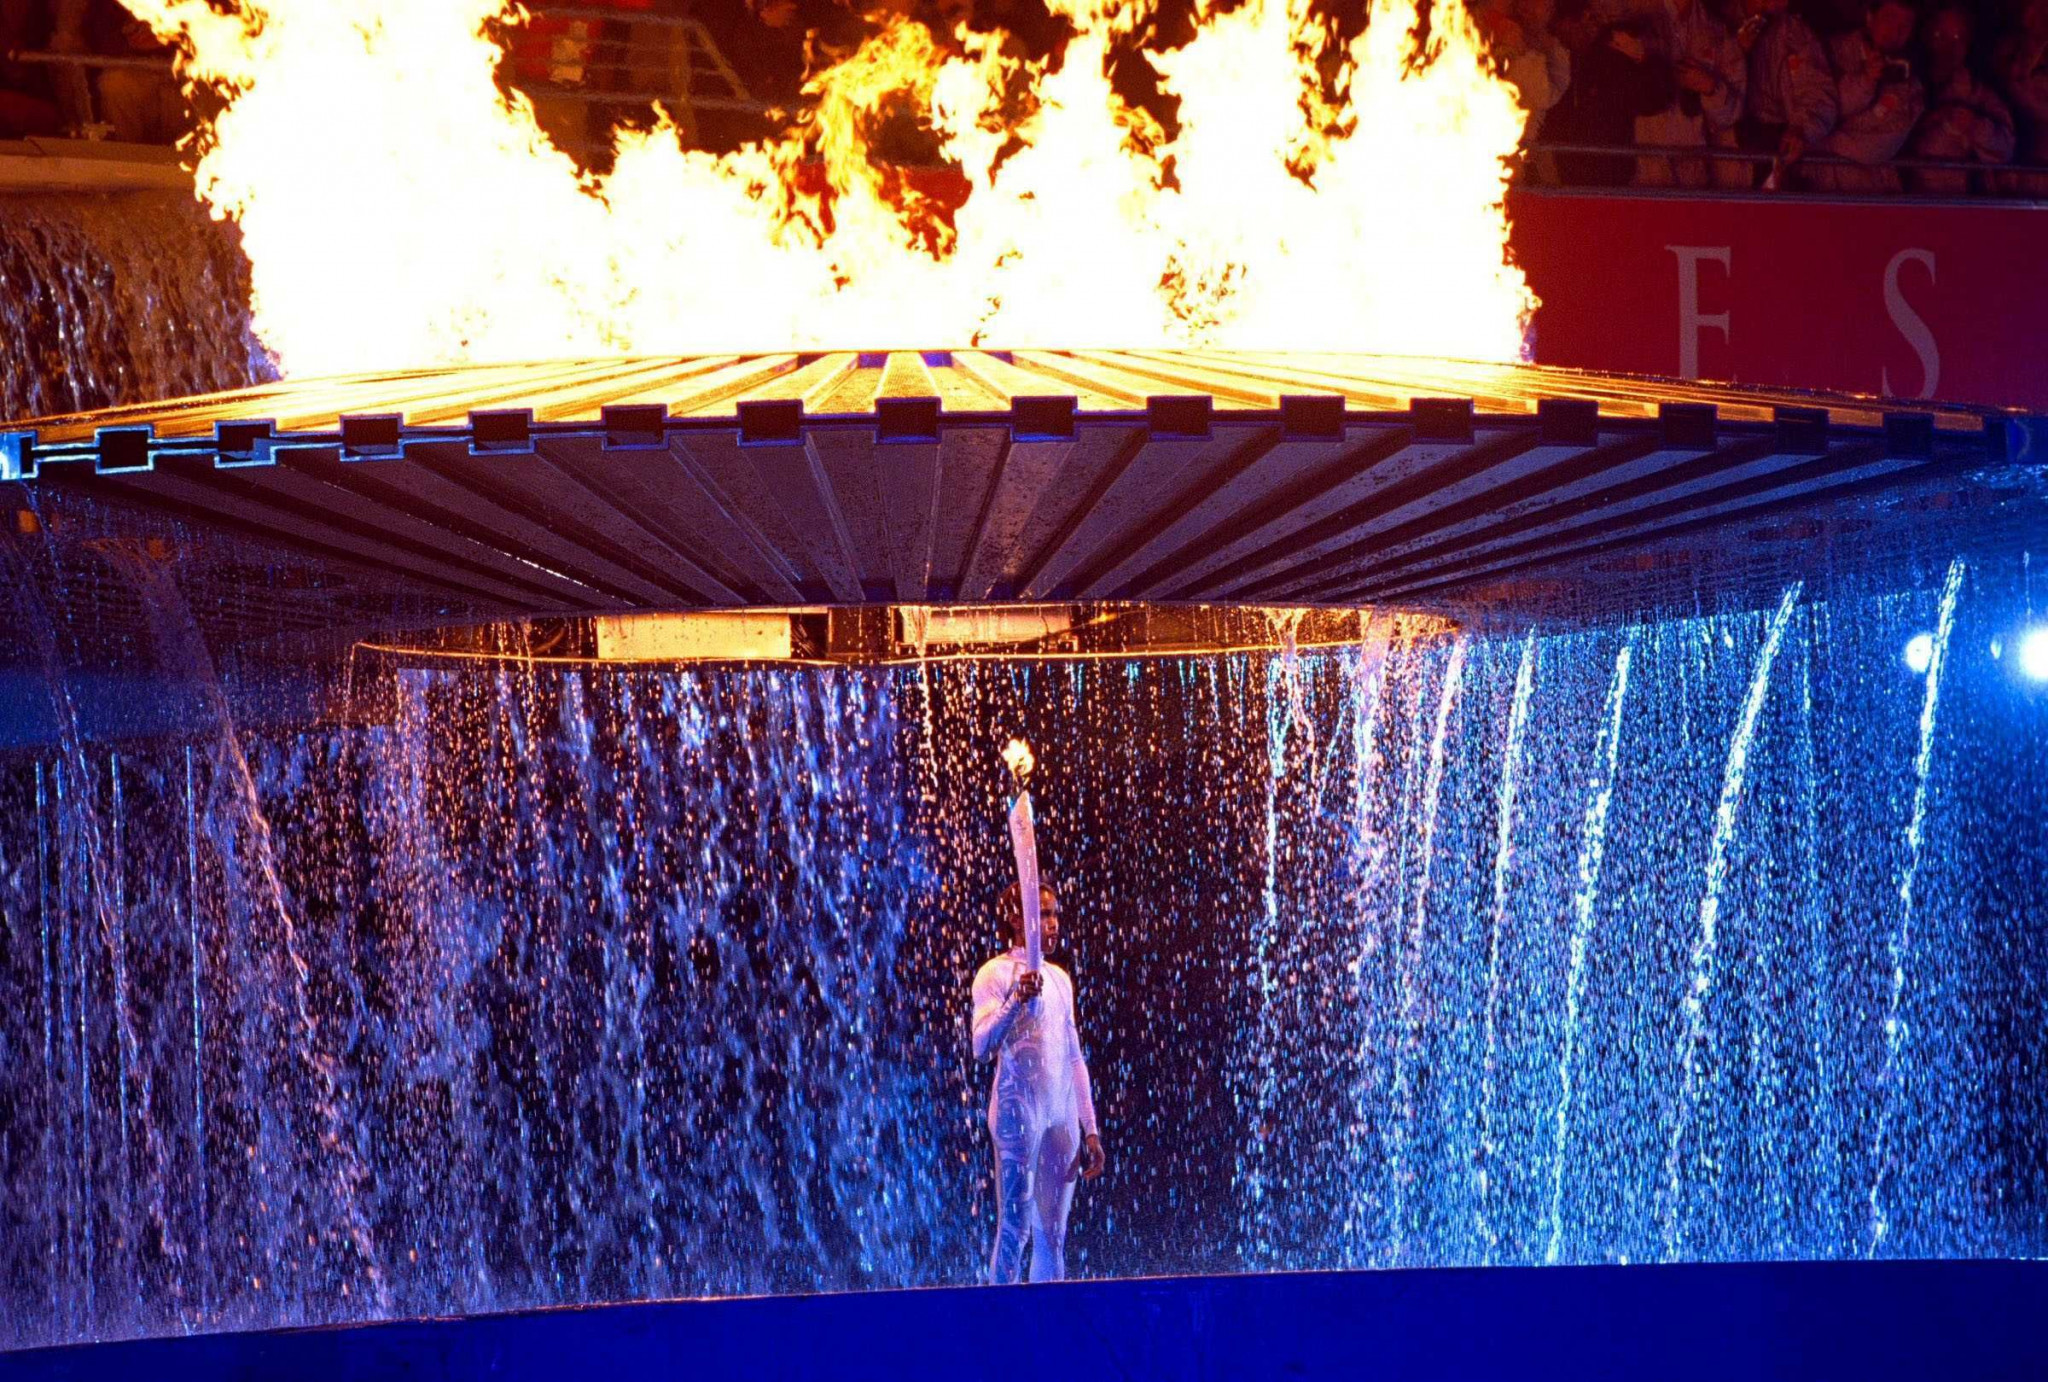 Olympic gold medallist Cathy Freeman, who lit the Cauldron at the Opening Ceremony the last time Australia hosted the Games at Sydney in 2000, is expected to be given a leading role in Queensland's bid ©Getty Images